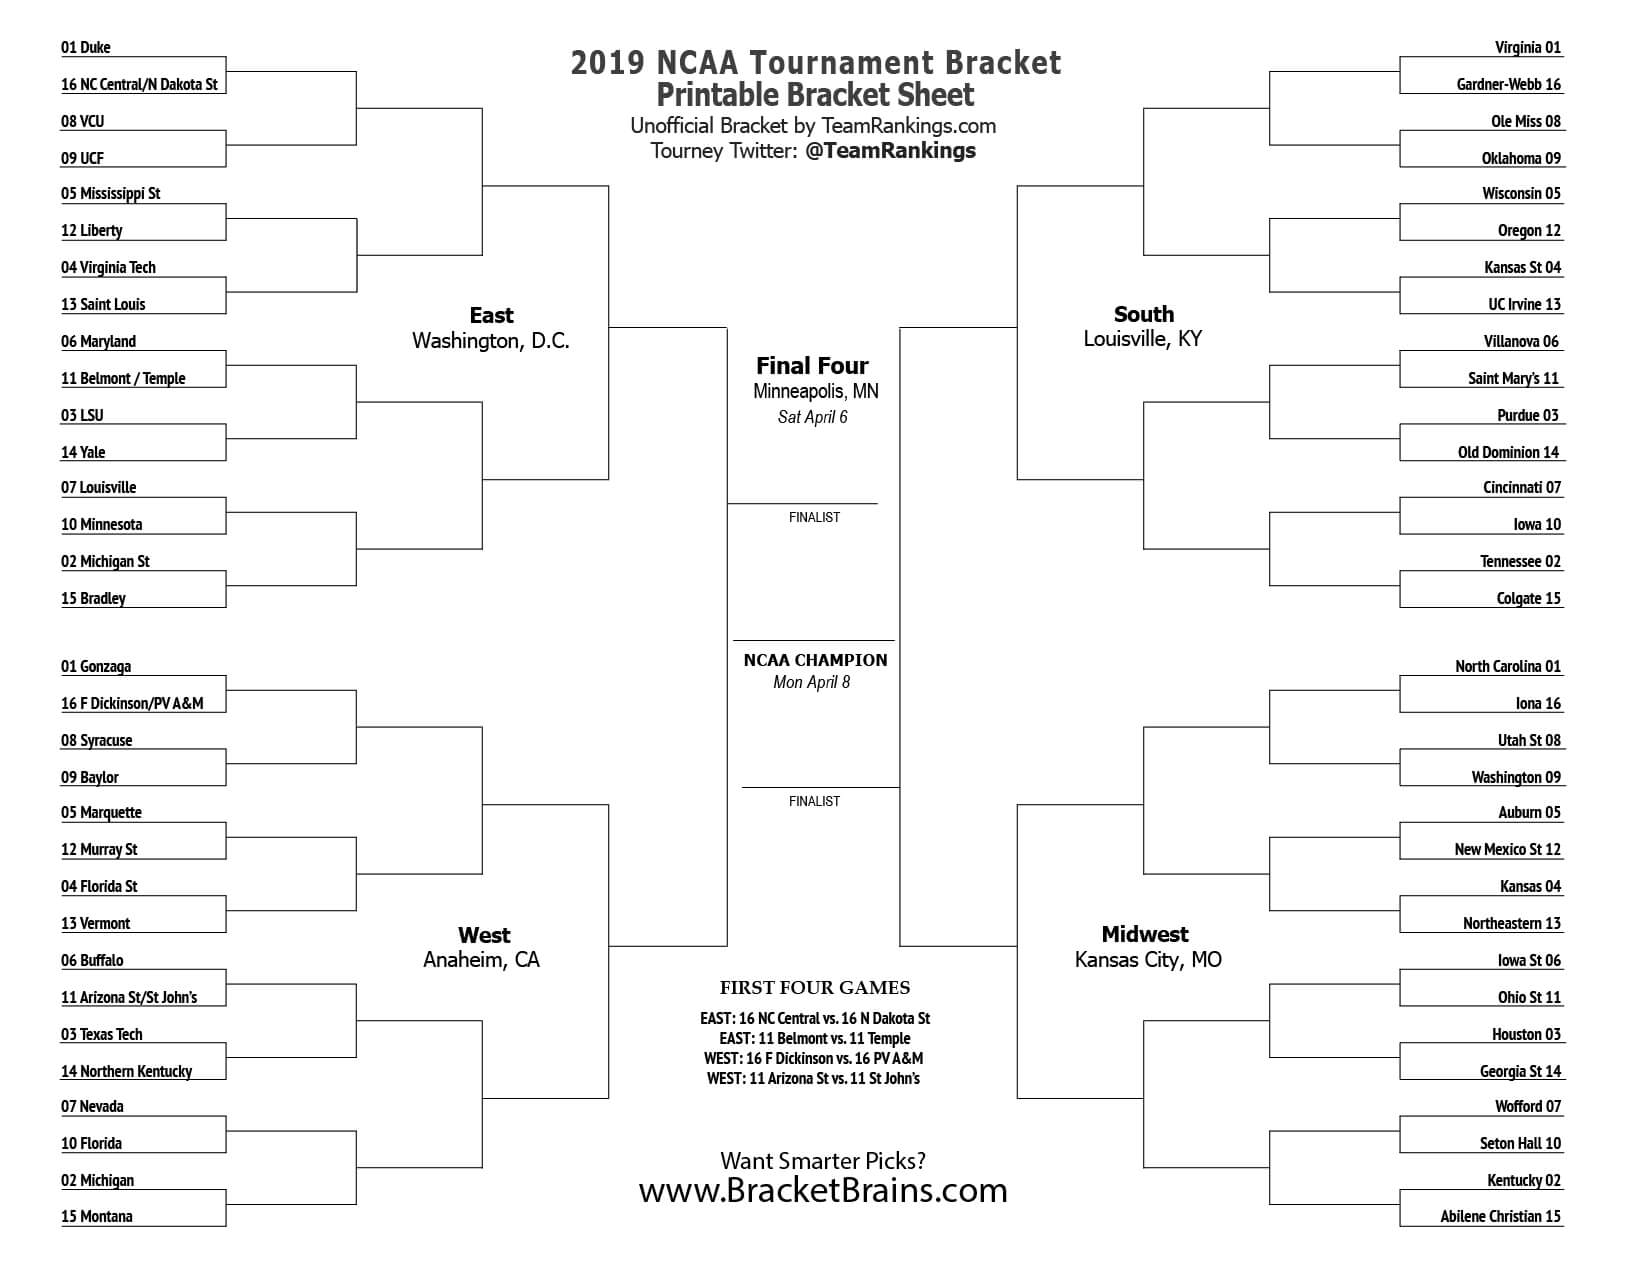 Get An NCAA Blank Bracket For 2019